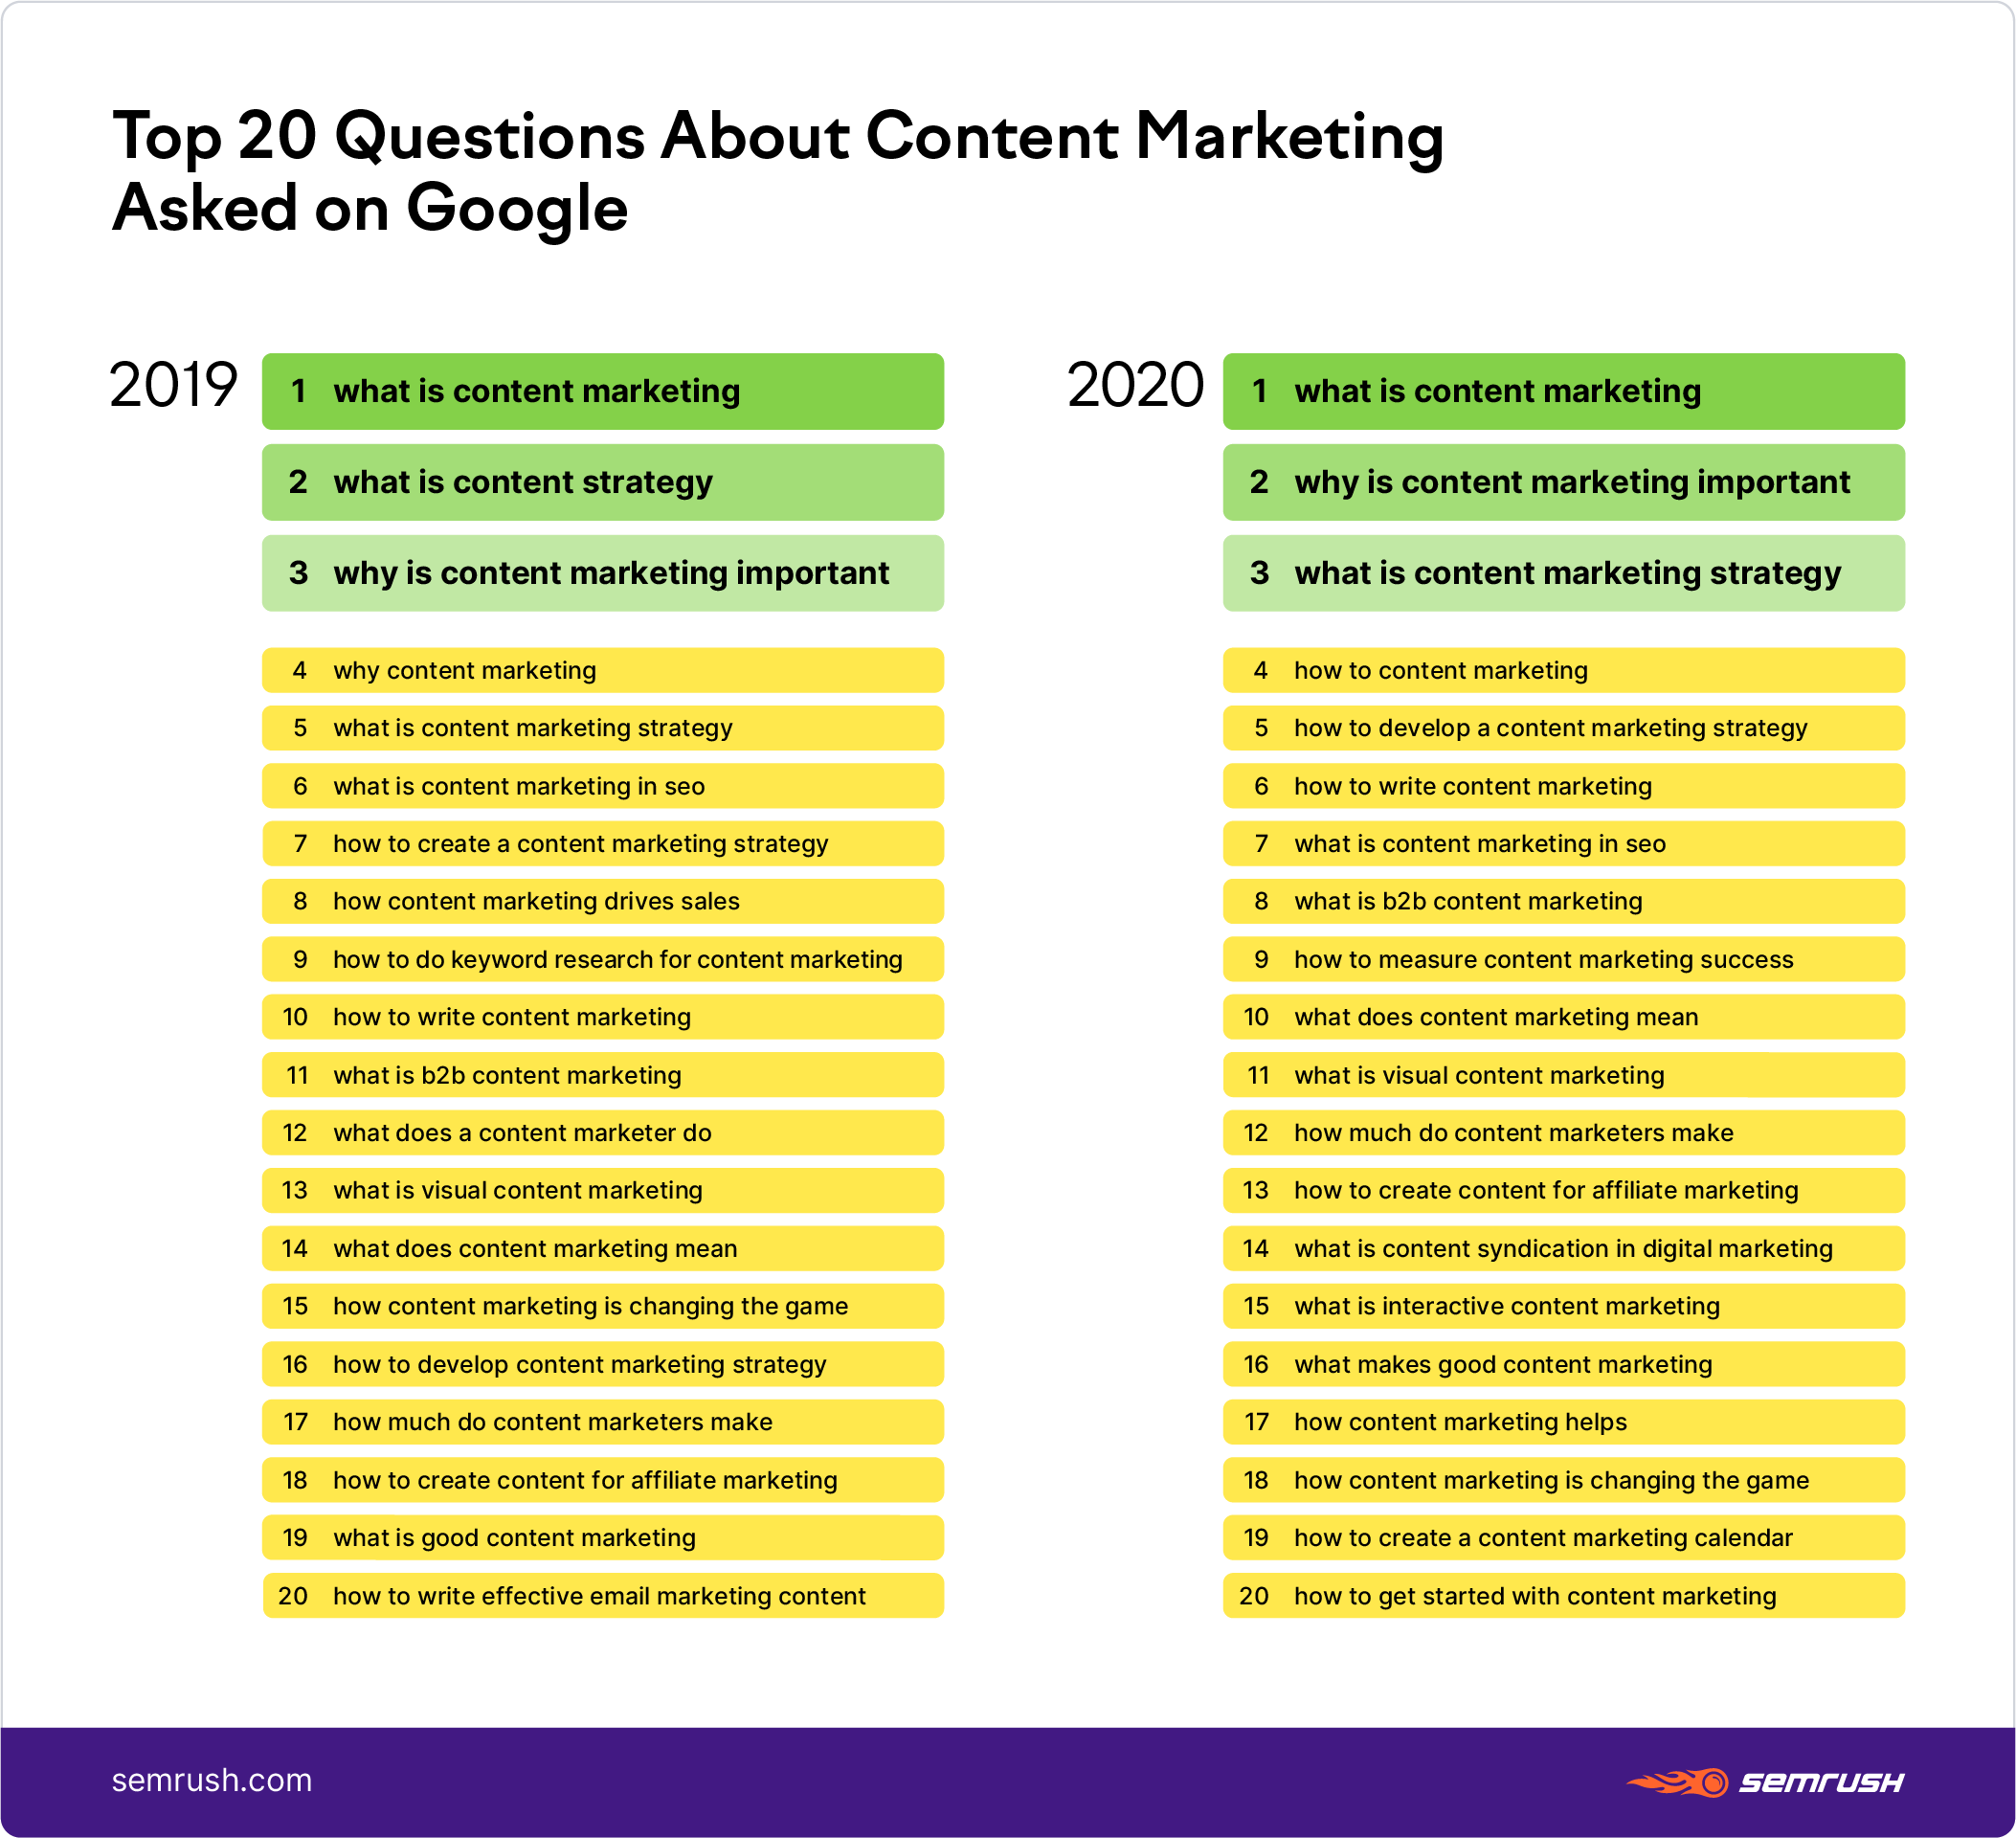 Top 20 questions about content marketing